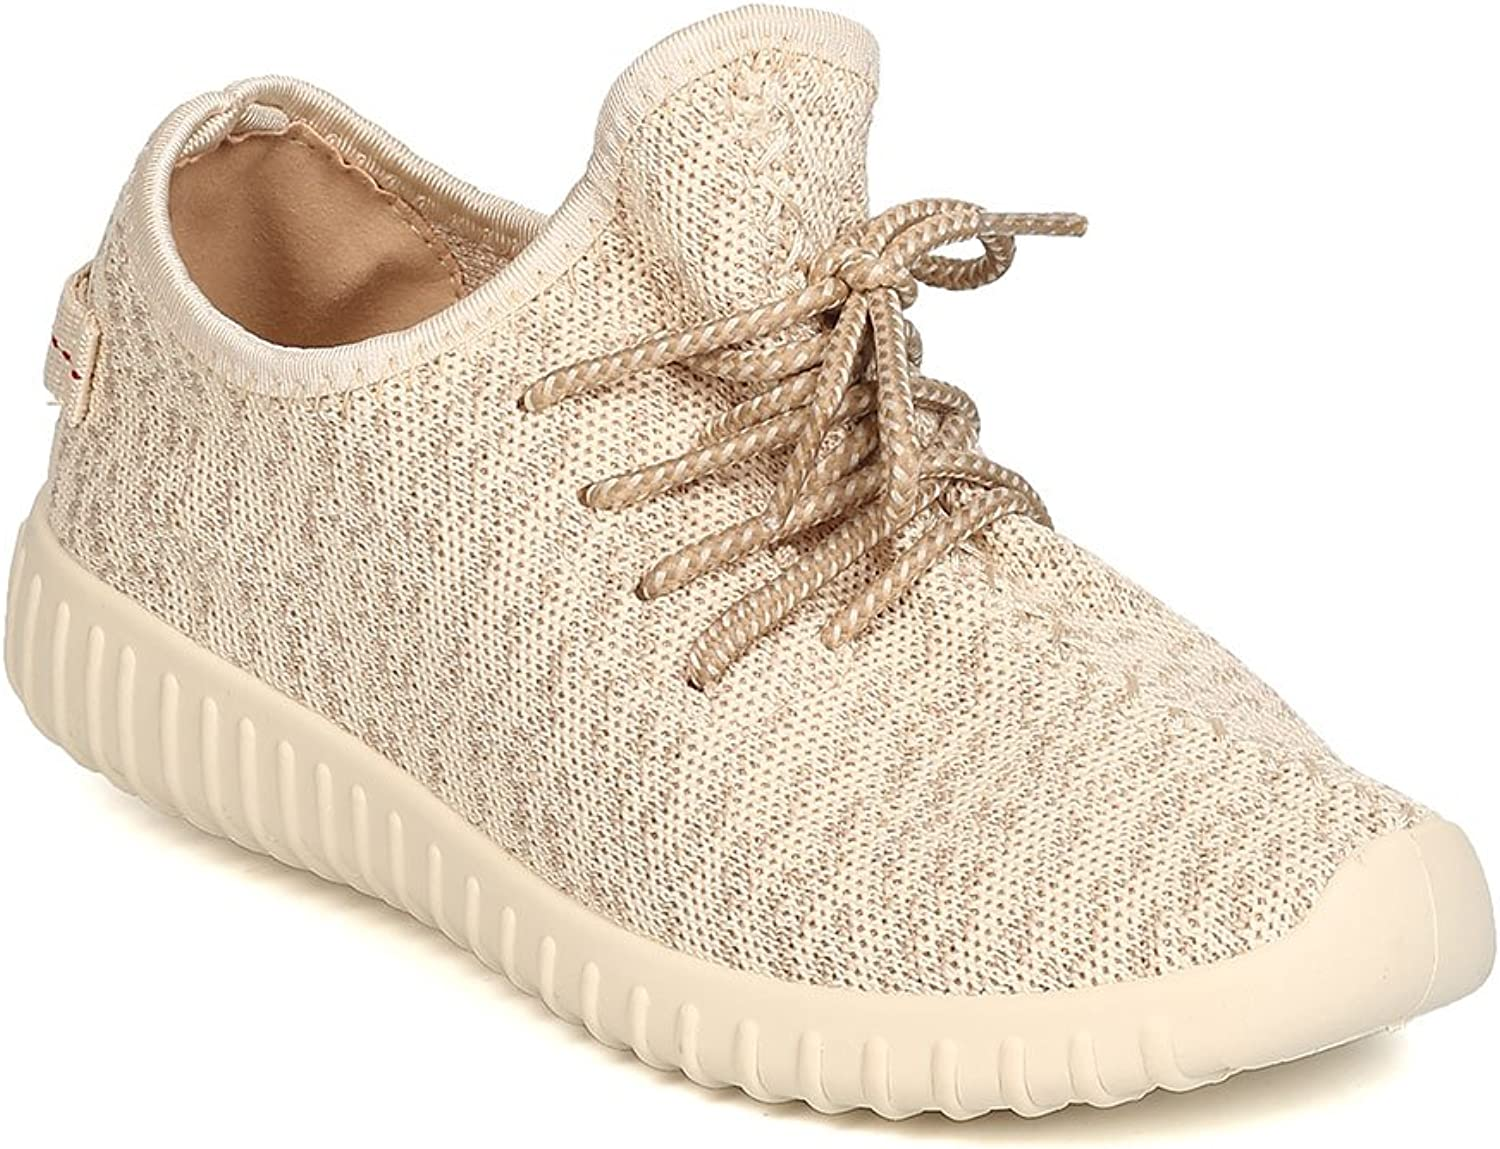 Wild Diva Women Fabric Knitted Lace Up Jogger Sneaker GA00 - Natural